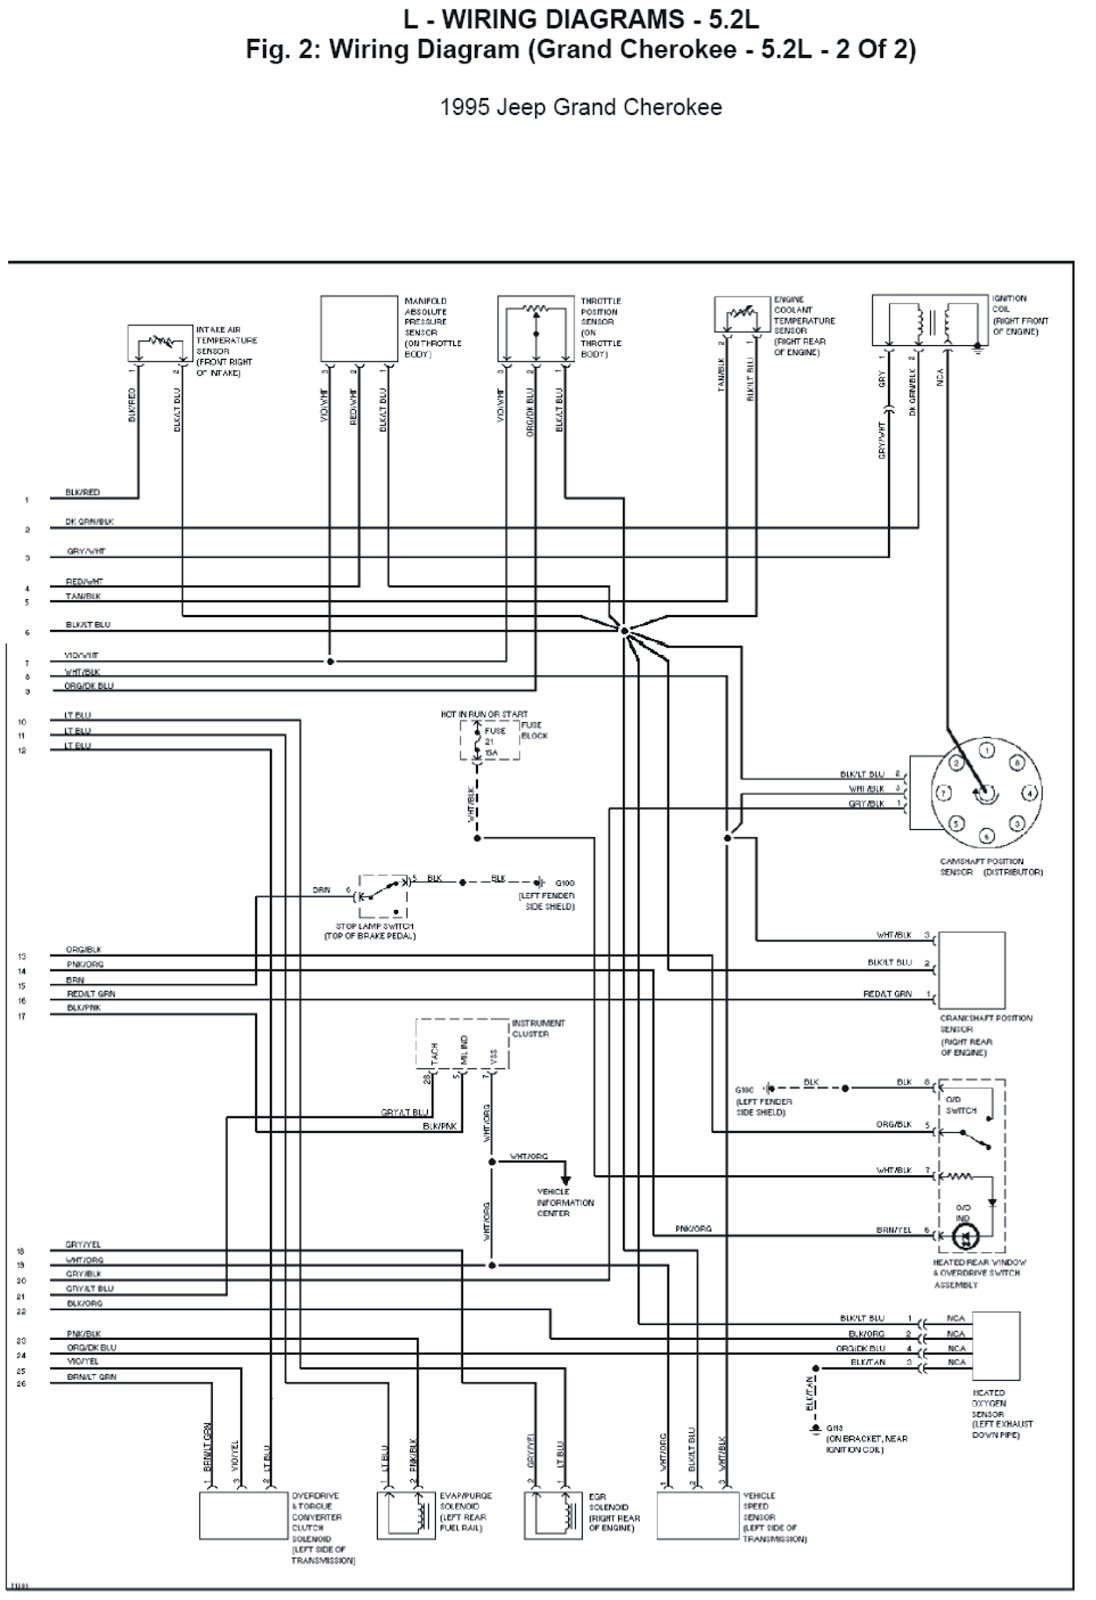 hight resolution of 1995 cherokee wiring diagram 1995 jeep schematics and wiring diagrams jeep wrangler 93